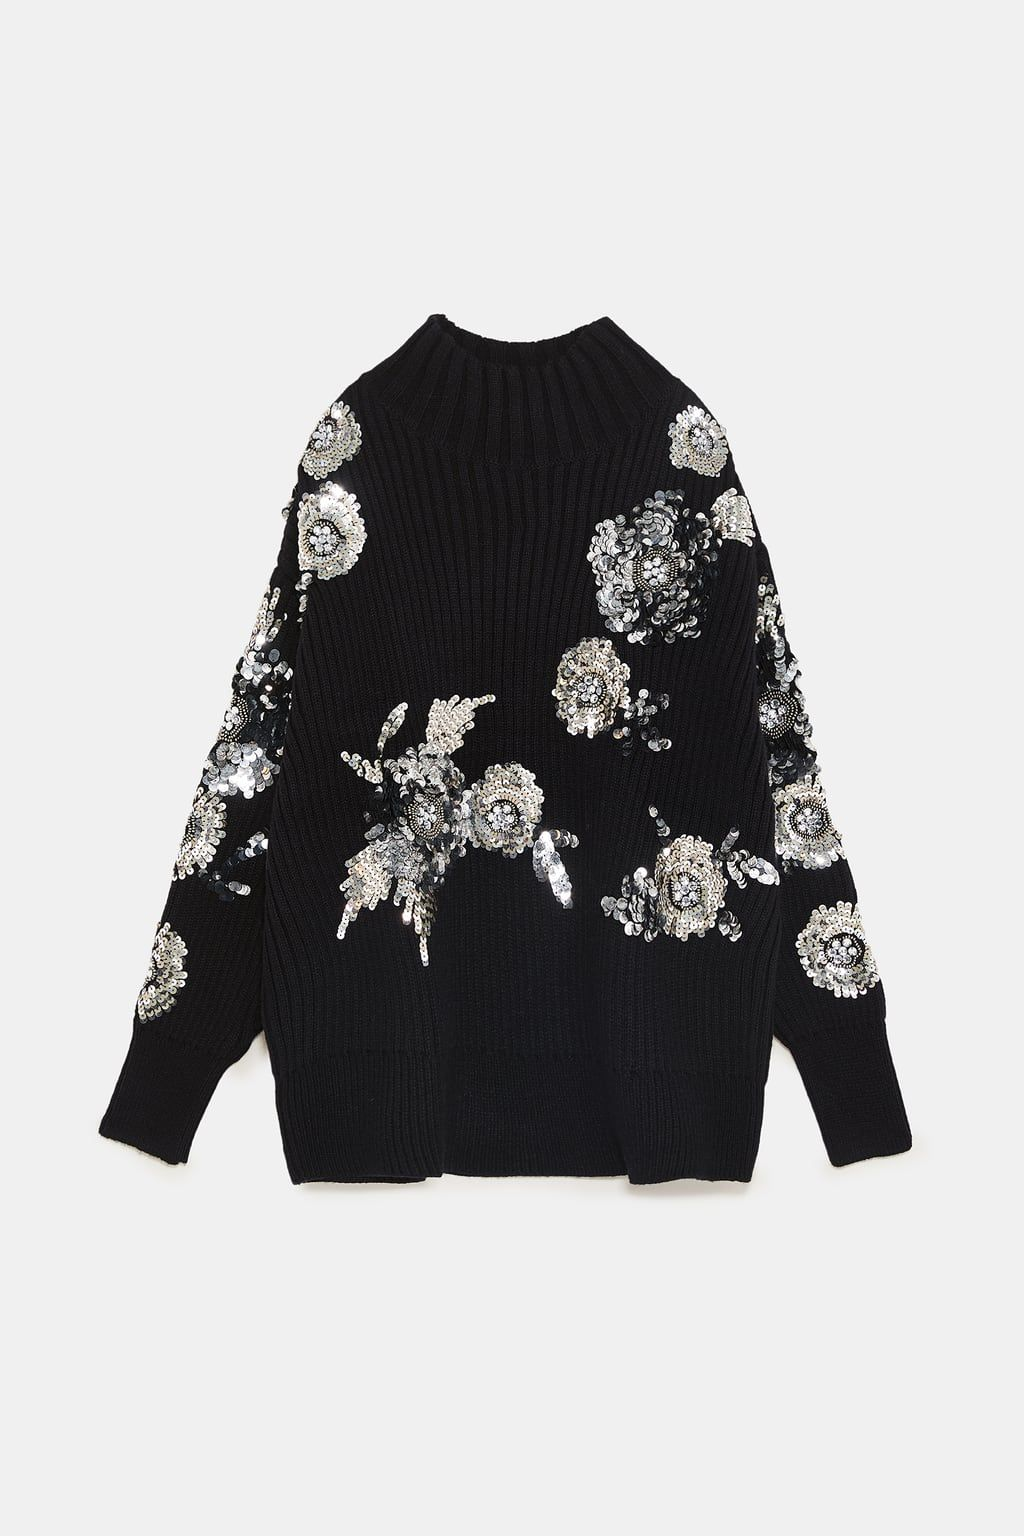 e1372f2f Image 8 of FLORAL SWEATER WITH SEQUINS from Zara   FASHION Party ...